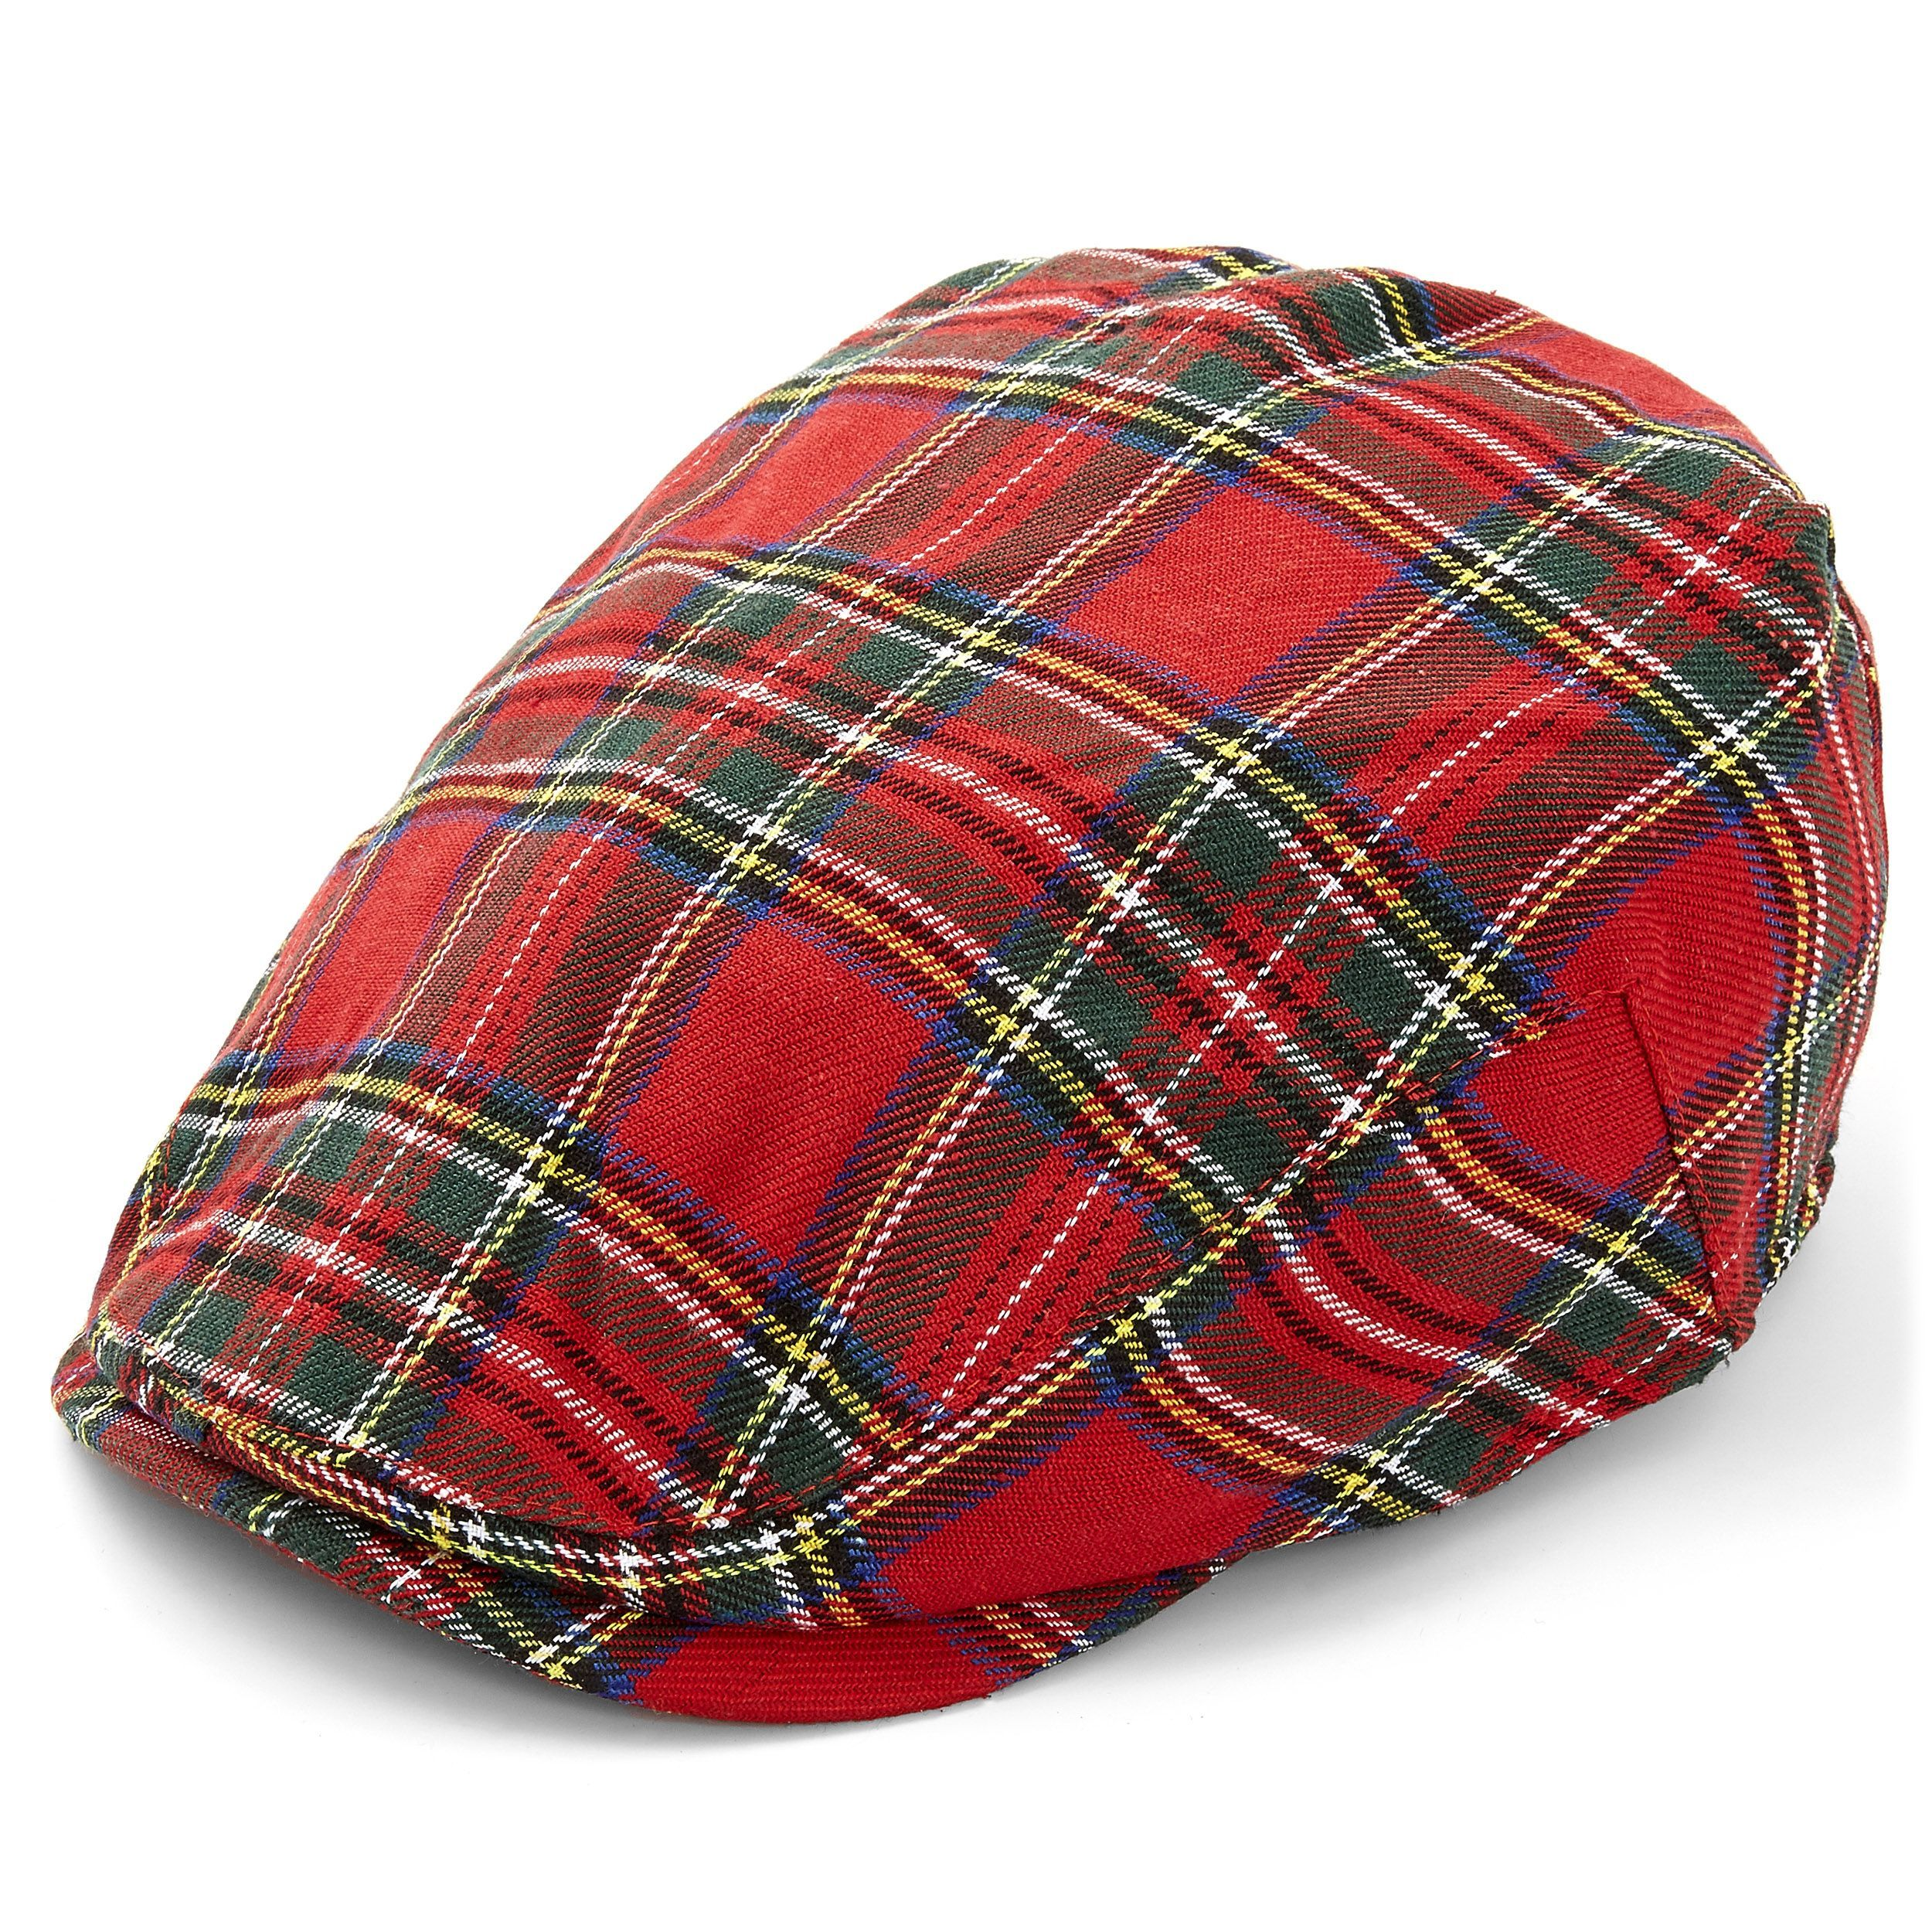 Red Wool Blend Tartan Flat Cap-Fully Lined-Classic Style and Pattern-Scottish